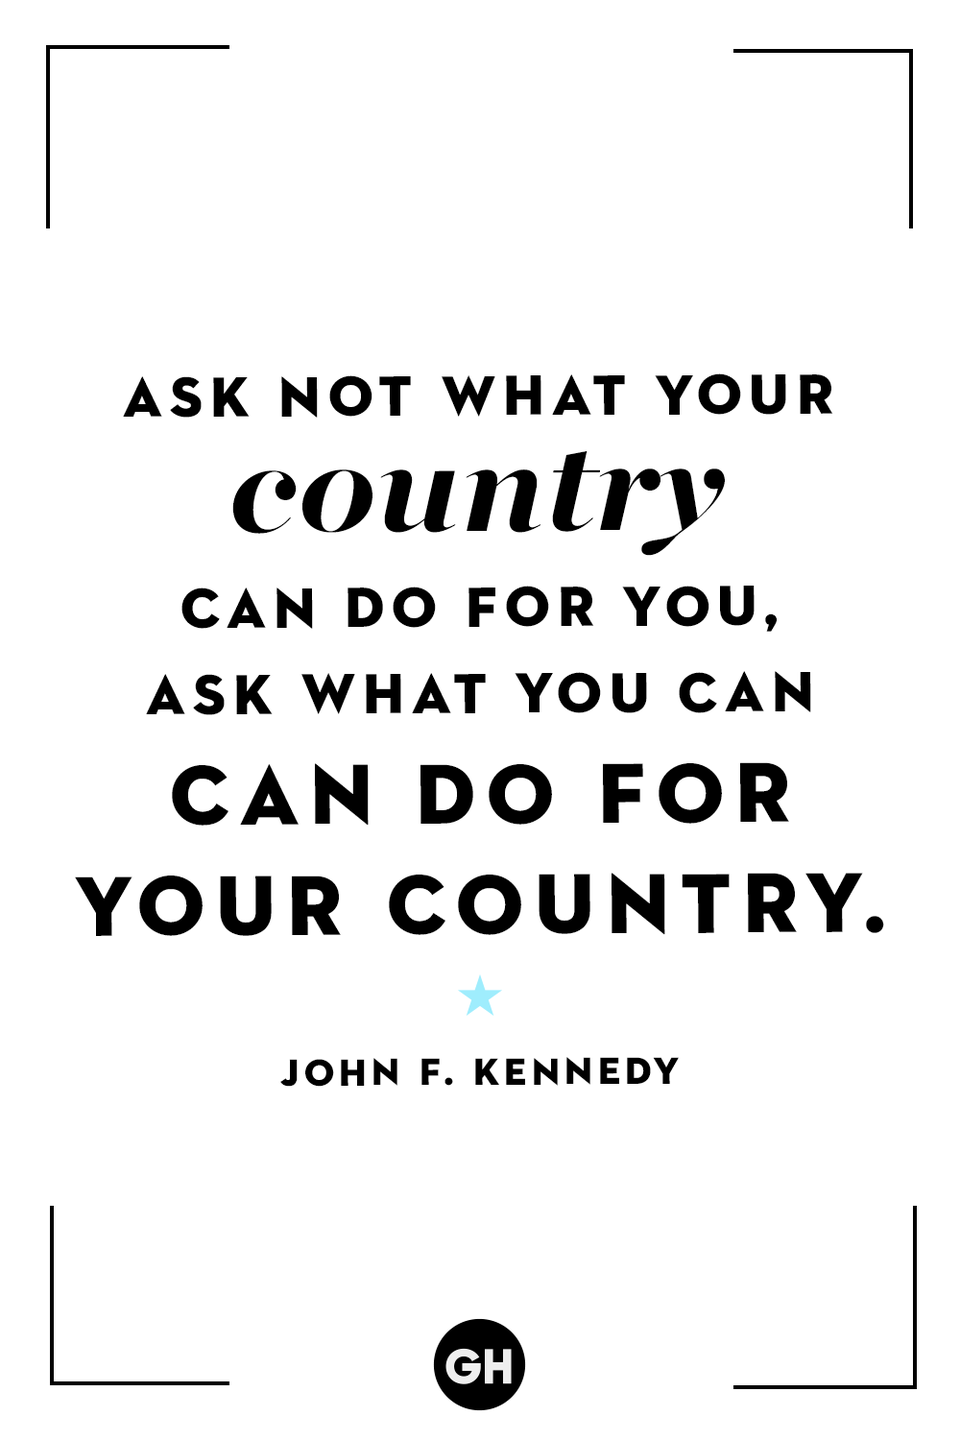 <p>Ask not what your country can do for you, ask what you can do for your country.</p>